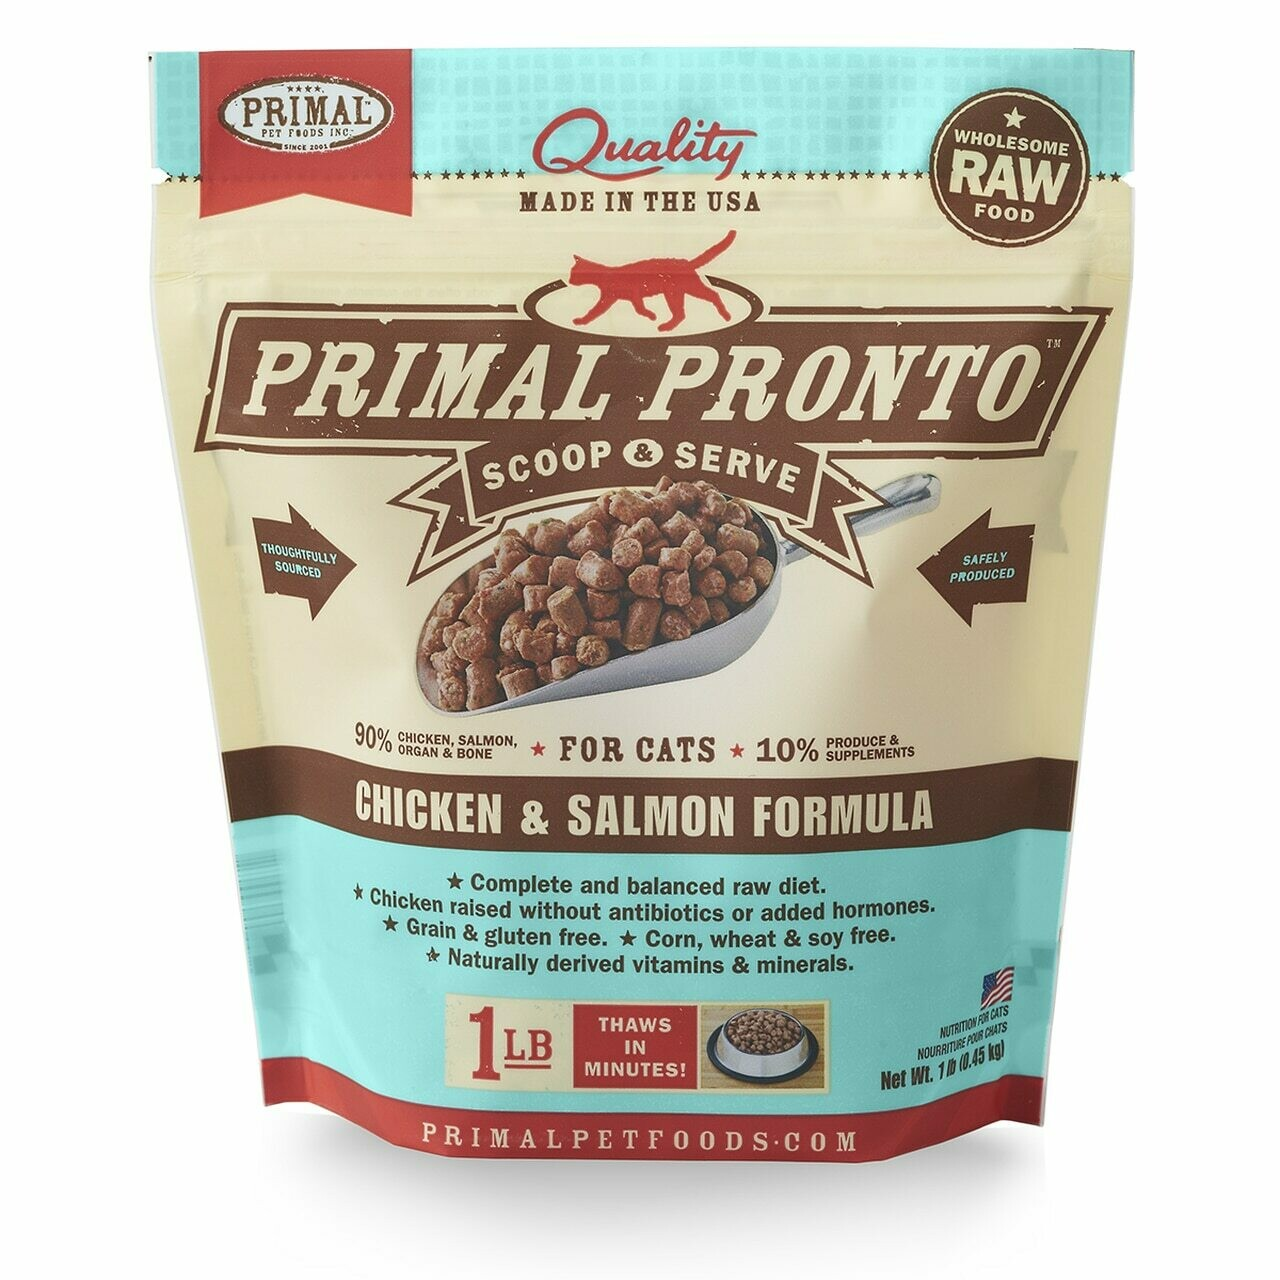 Cat - Primal Pronto Chicken & Salmon 1lb